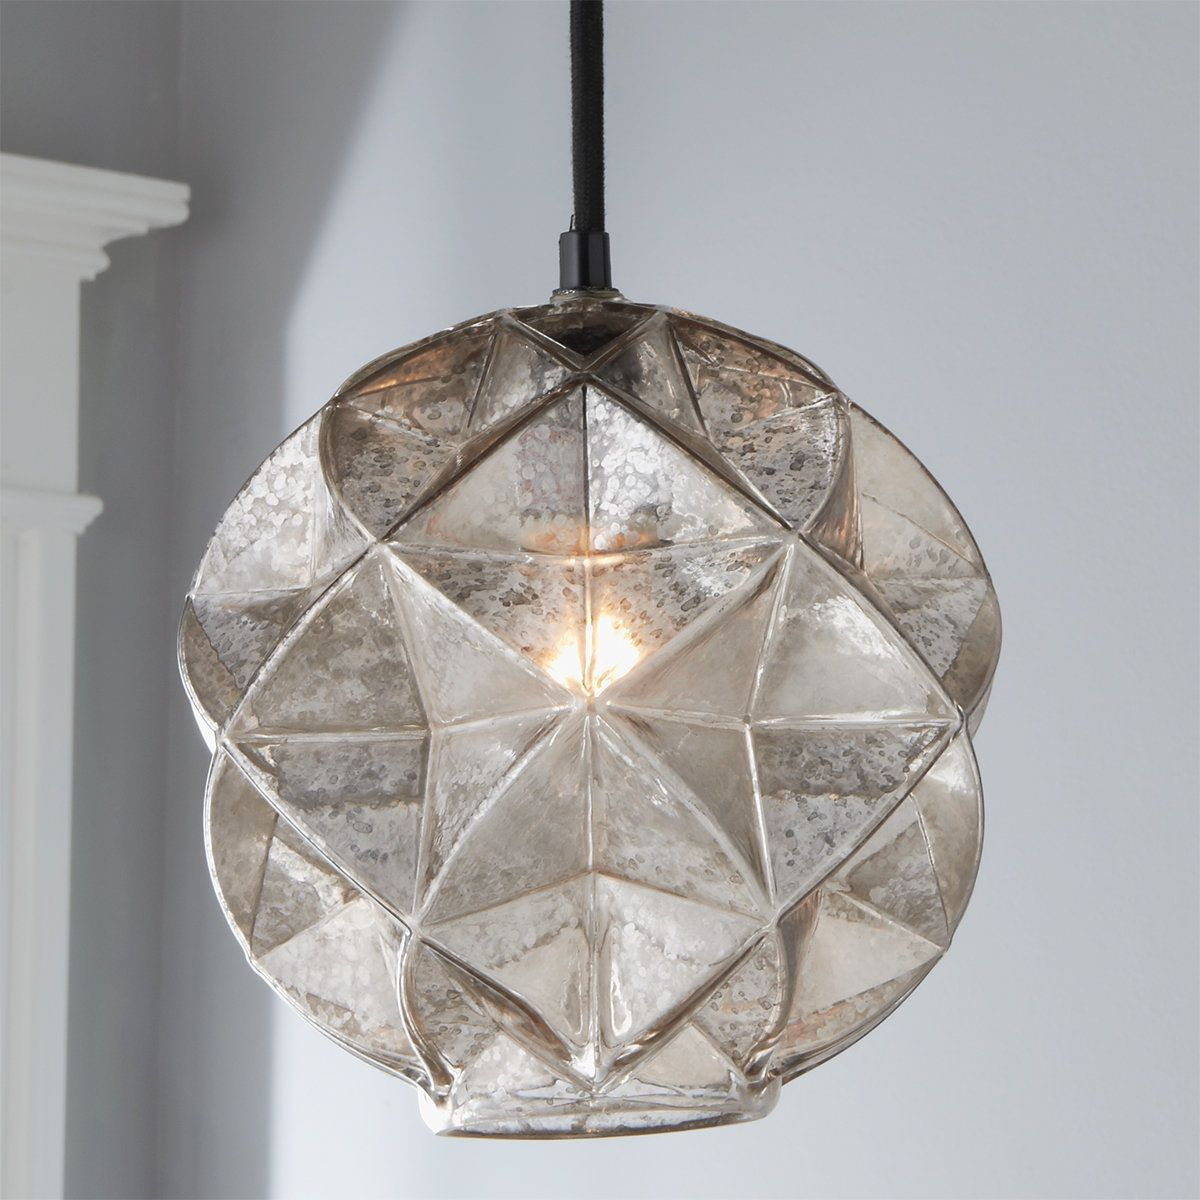 Mercury Glass Geodesic Dome Pendant In 2021 Dome Pendant Lighting Mercury Glass Chandelier Glass Pendant Light